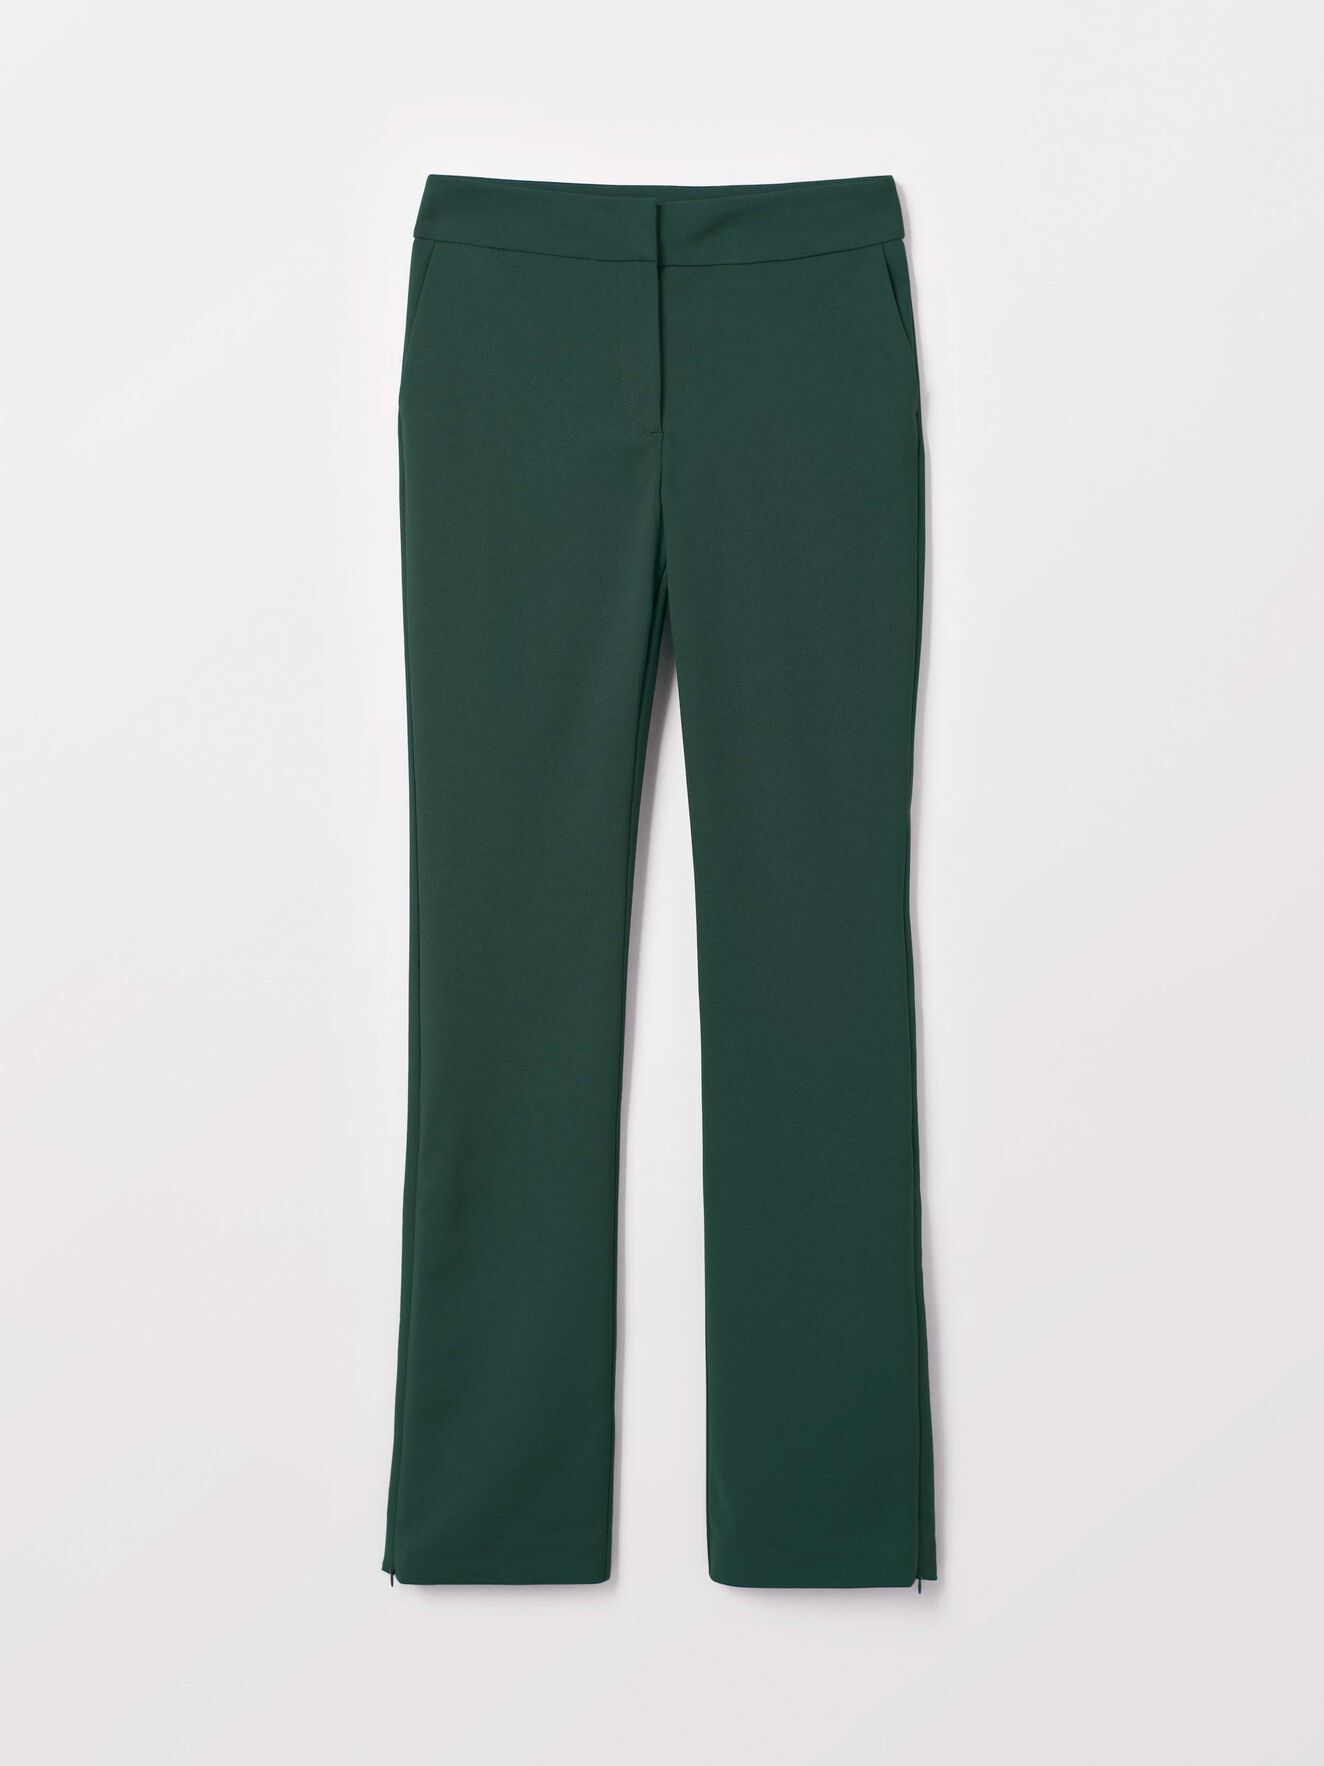 Capella Trousers in Dark Forest from Tiger of Sweden